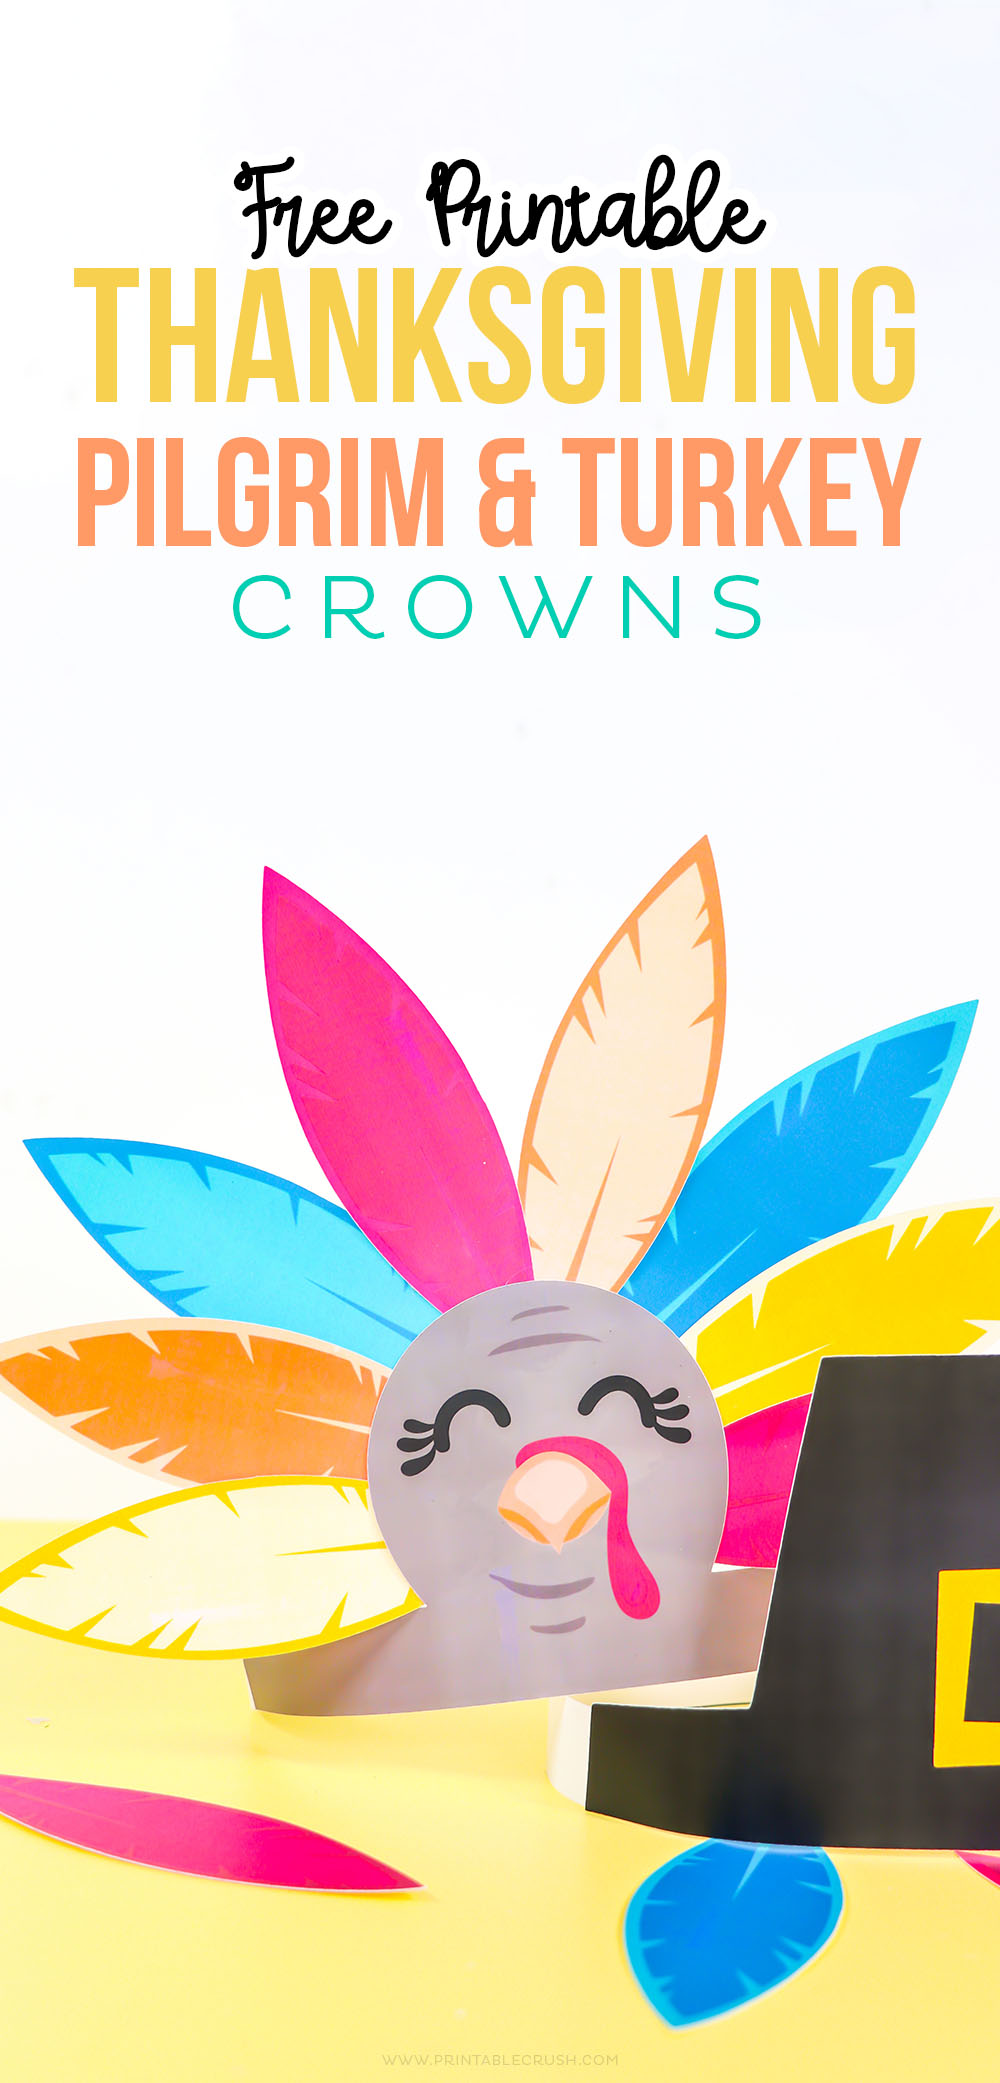 Download these FREE Printable Turkey and Pilgrim Crowns for Thanksgiving